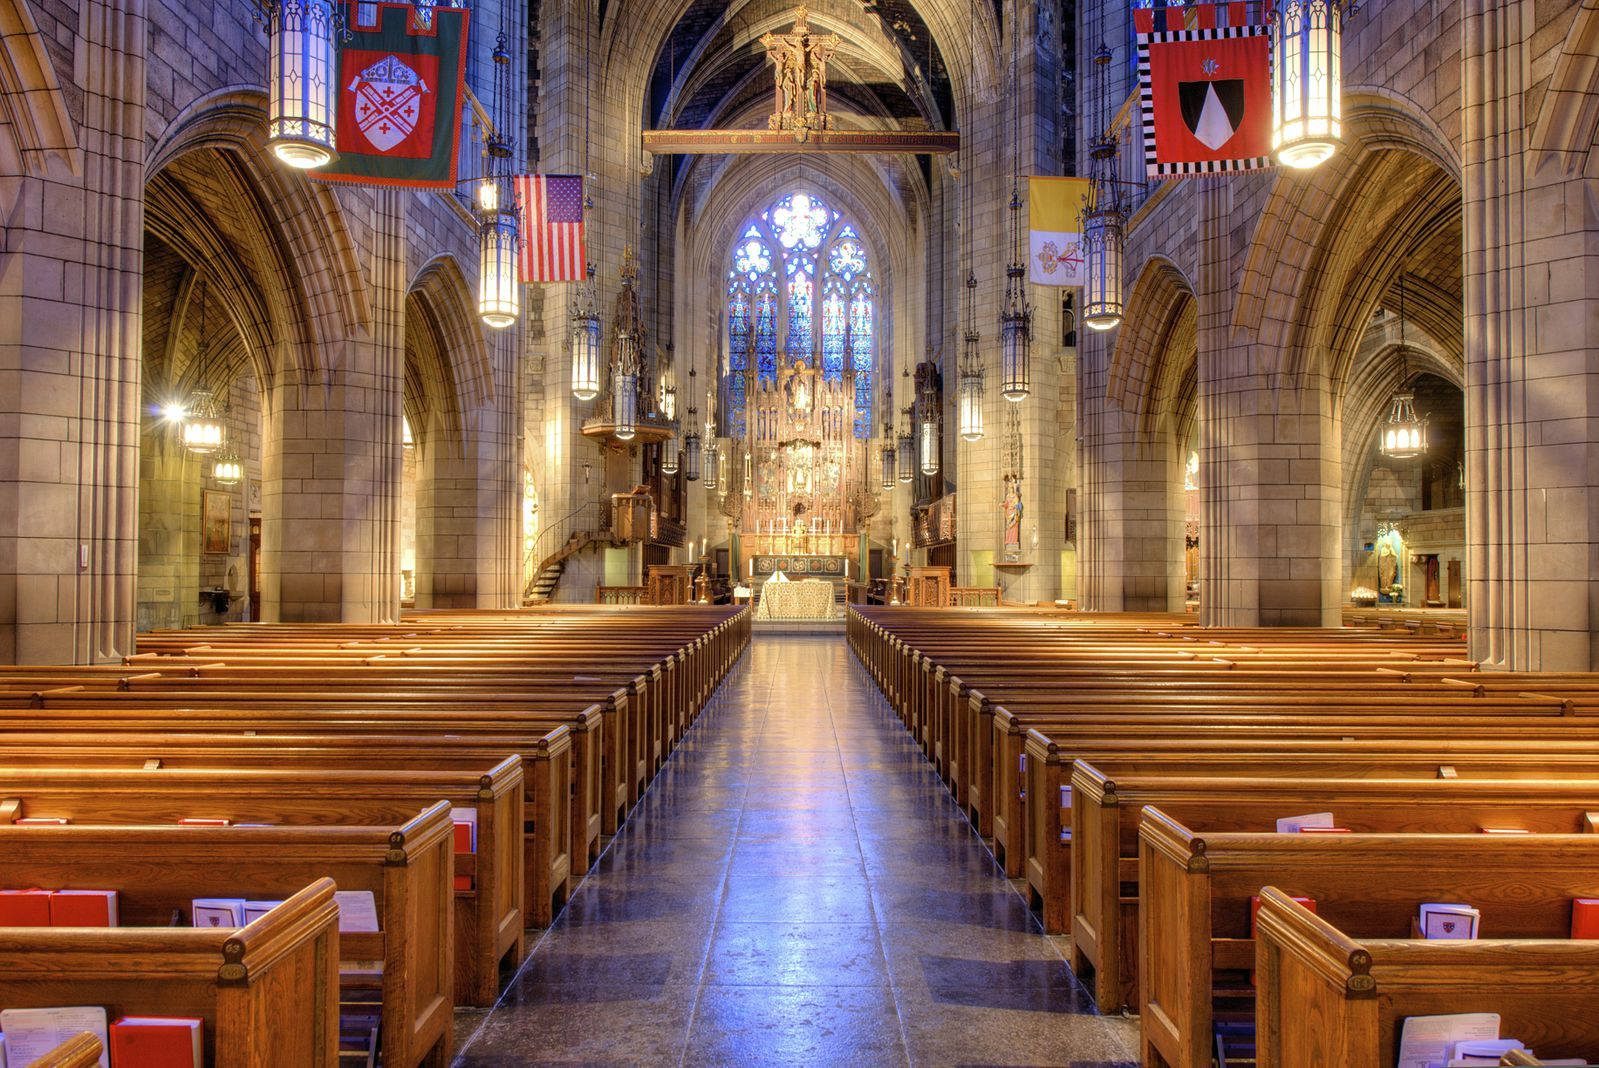 Church_of_St._Vincent_Ferrer_(NYC)_-_Nave.jpg